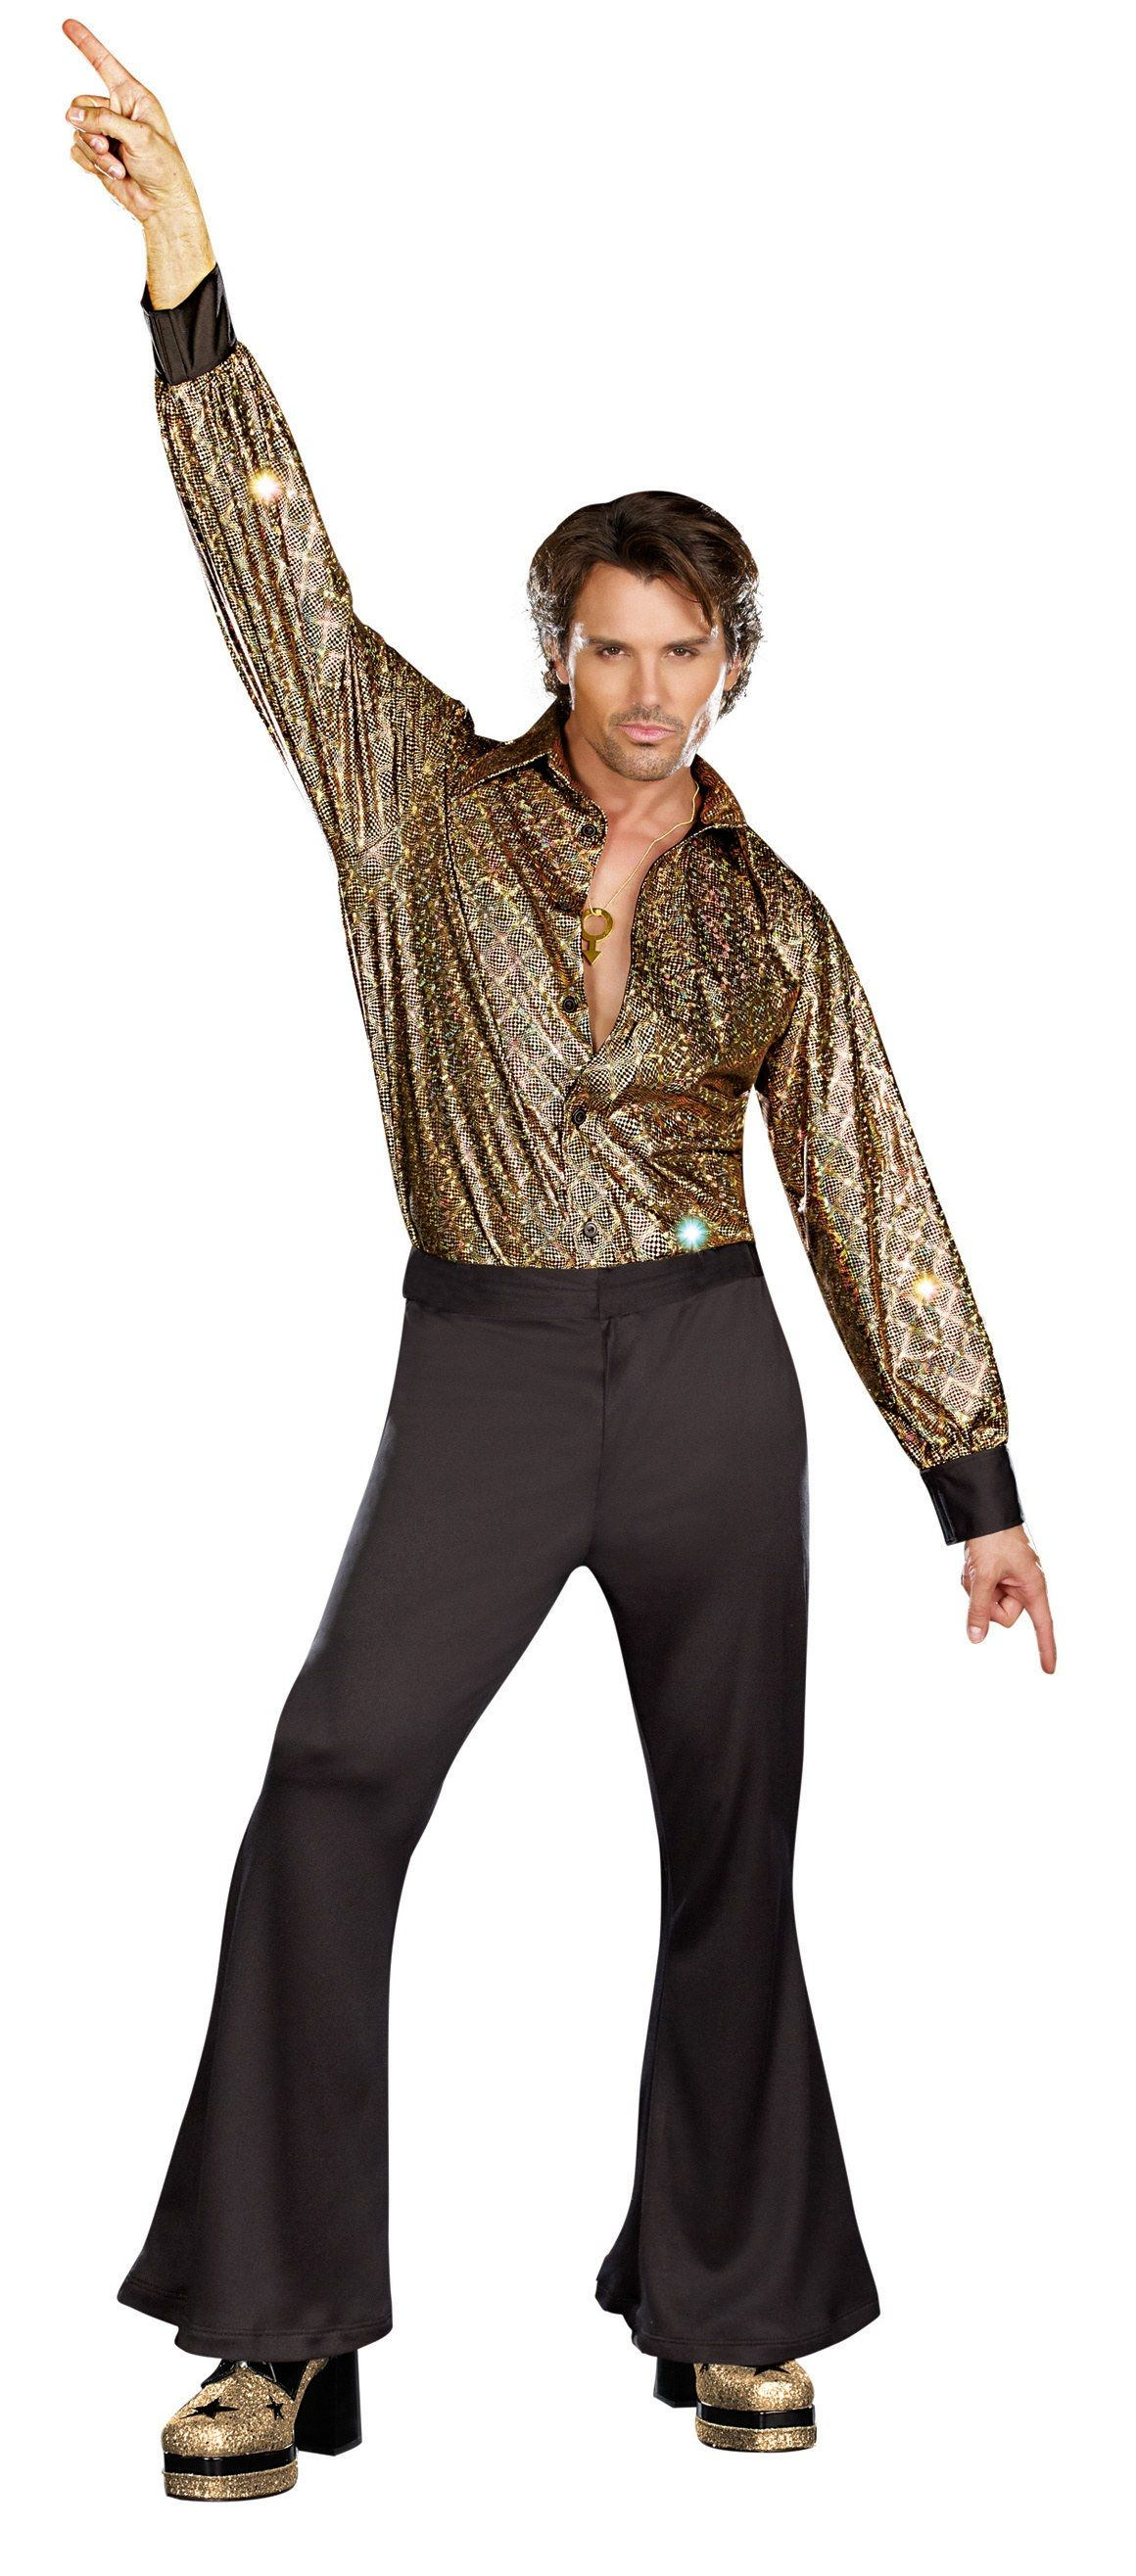 88968bf2 70s Black Fashion Male | mens disco stayin alive 70s adult costume 70s  costumes this item is .